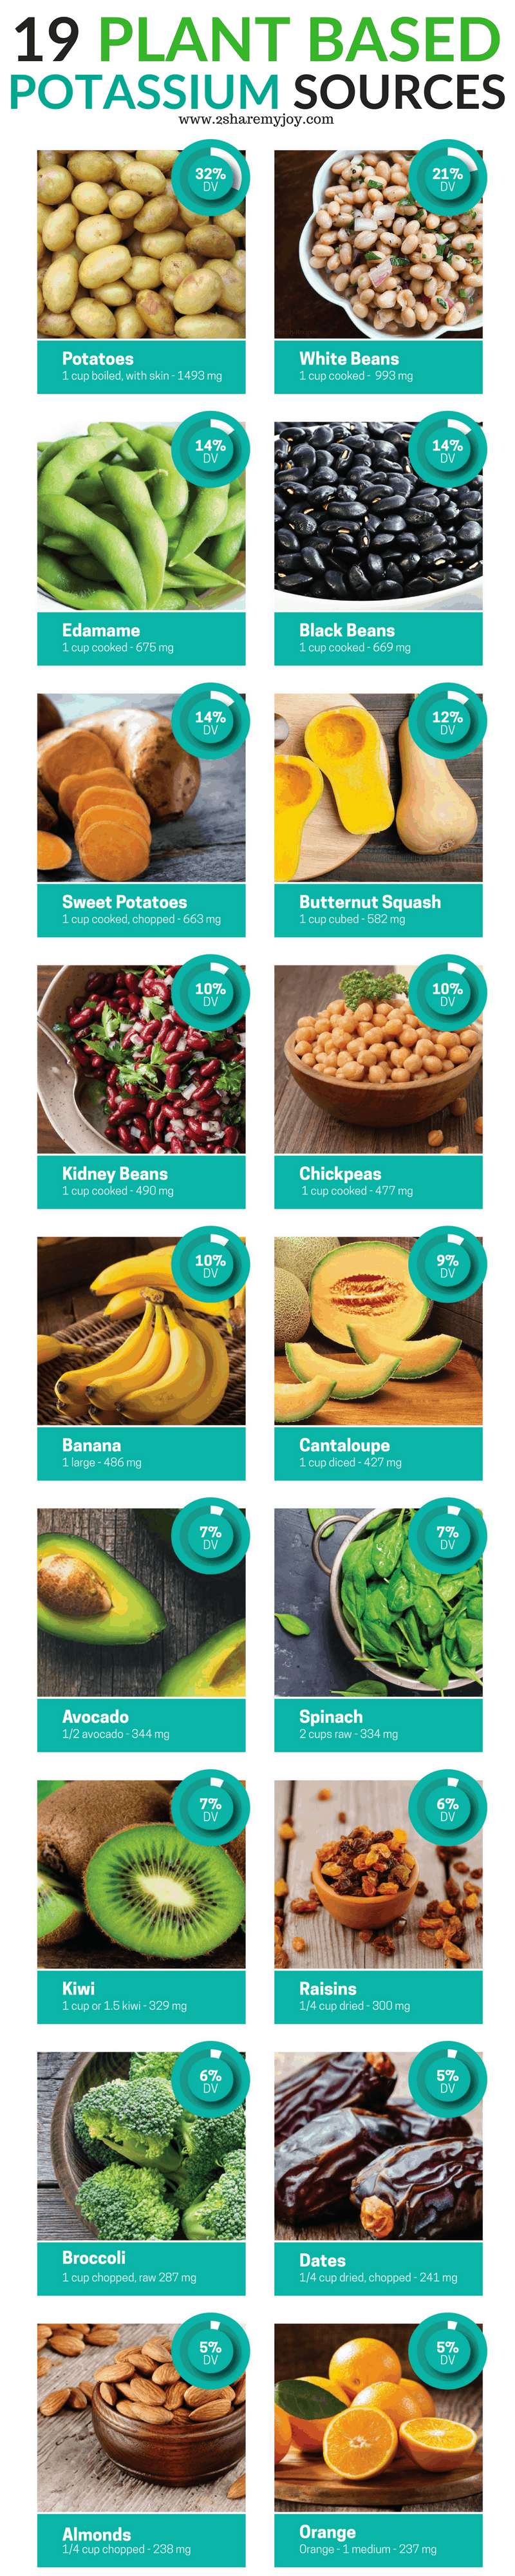 Best plant based potassium rich foods to avoid potassium deficiency on a plant based or any diet. Signs and symptoms, recipes, meal plan example to avoid potassium deficiency for a balanced and healthy diet. #deficiency #Potassium #diet #vegan